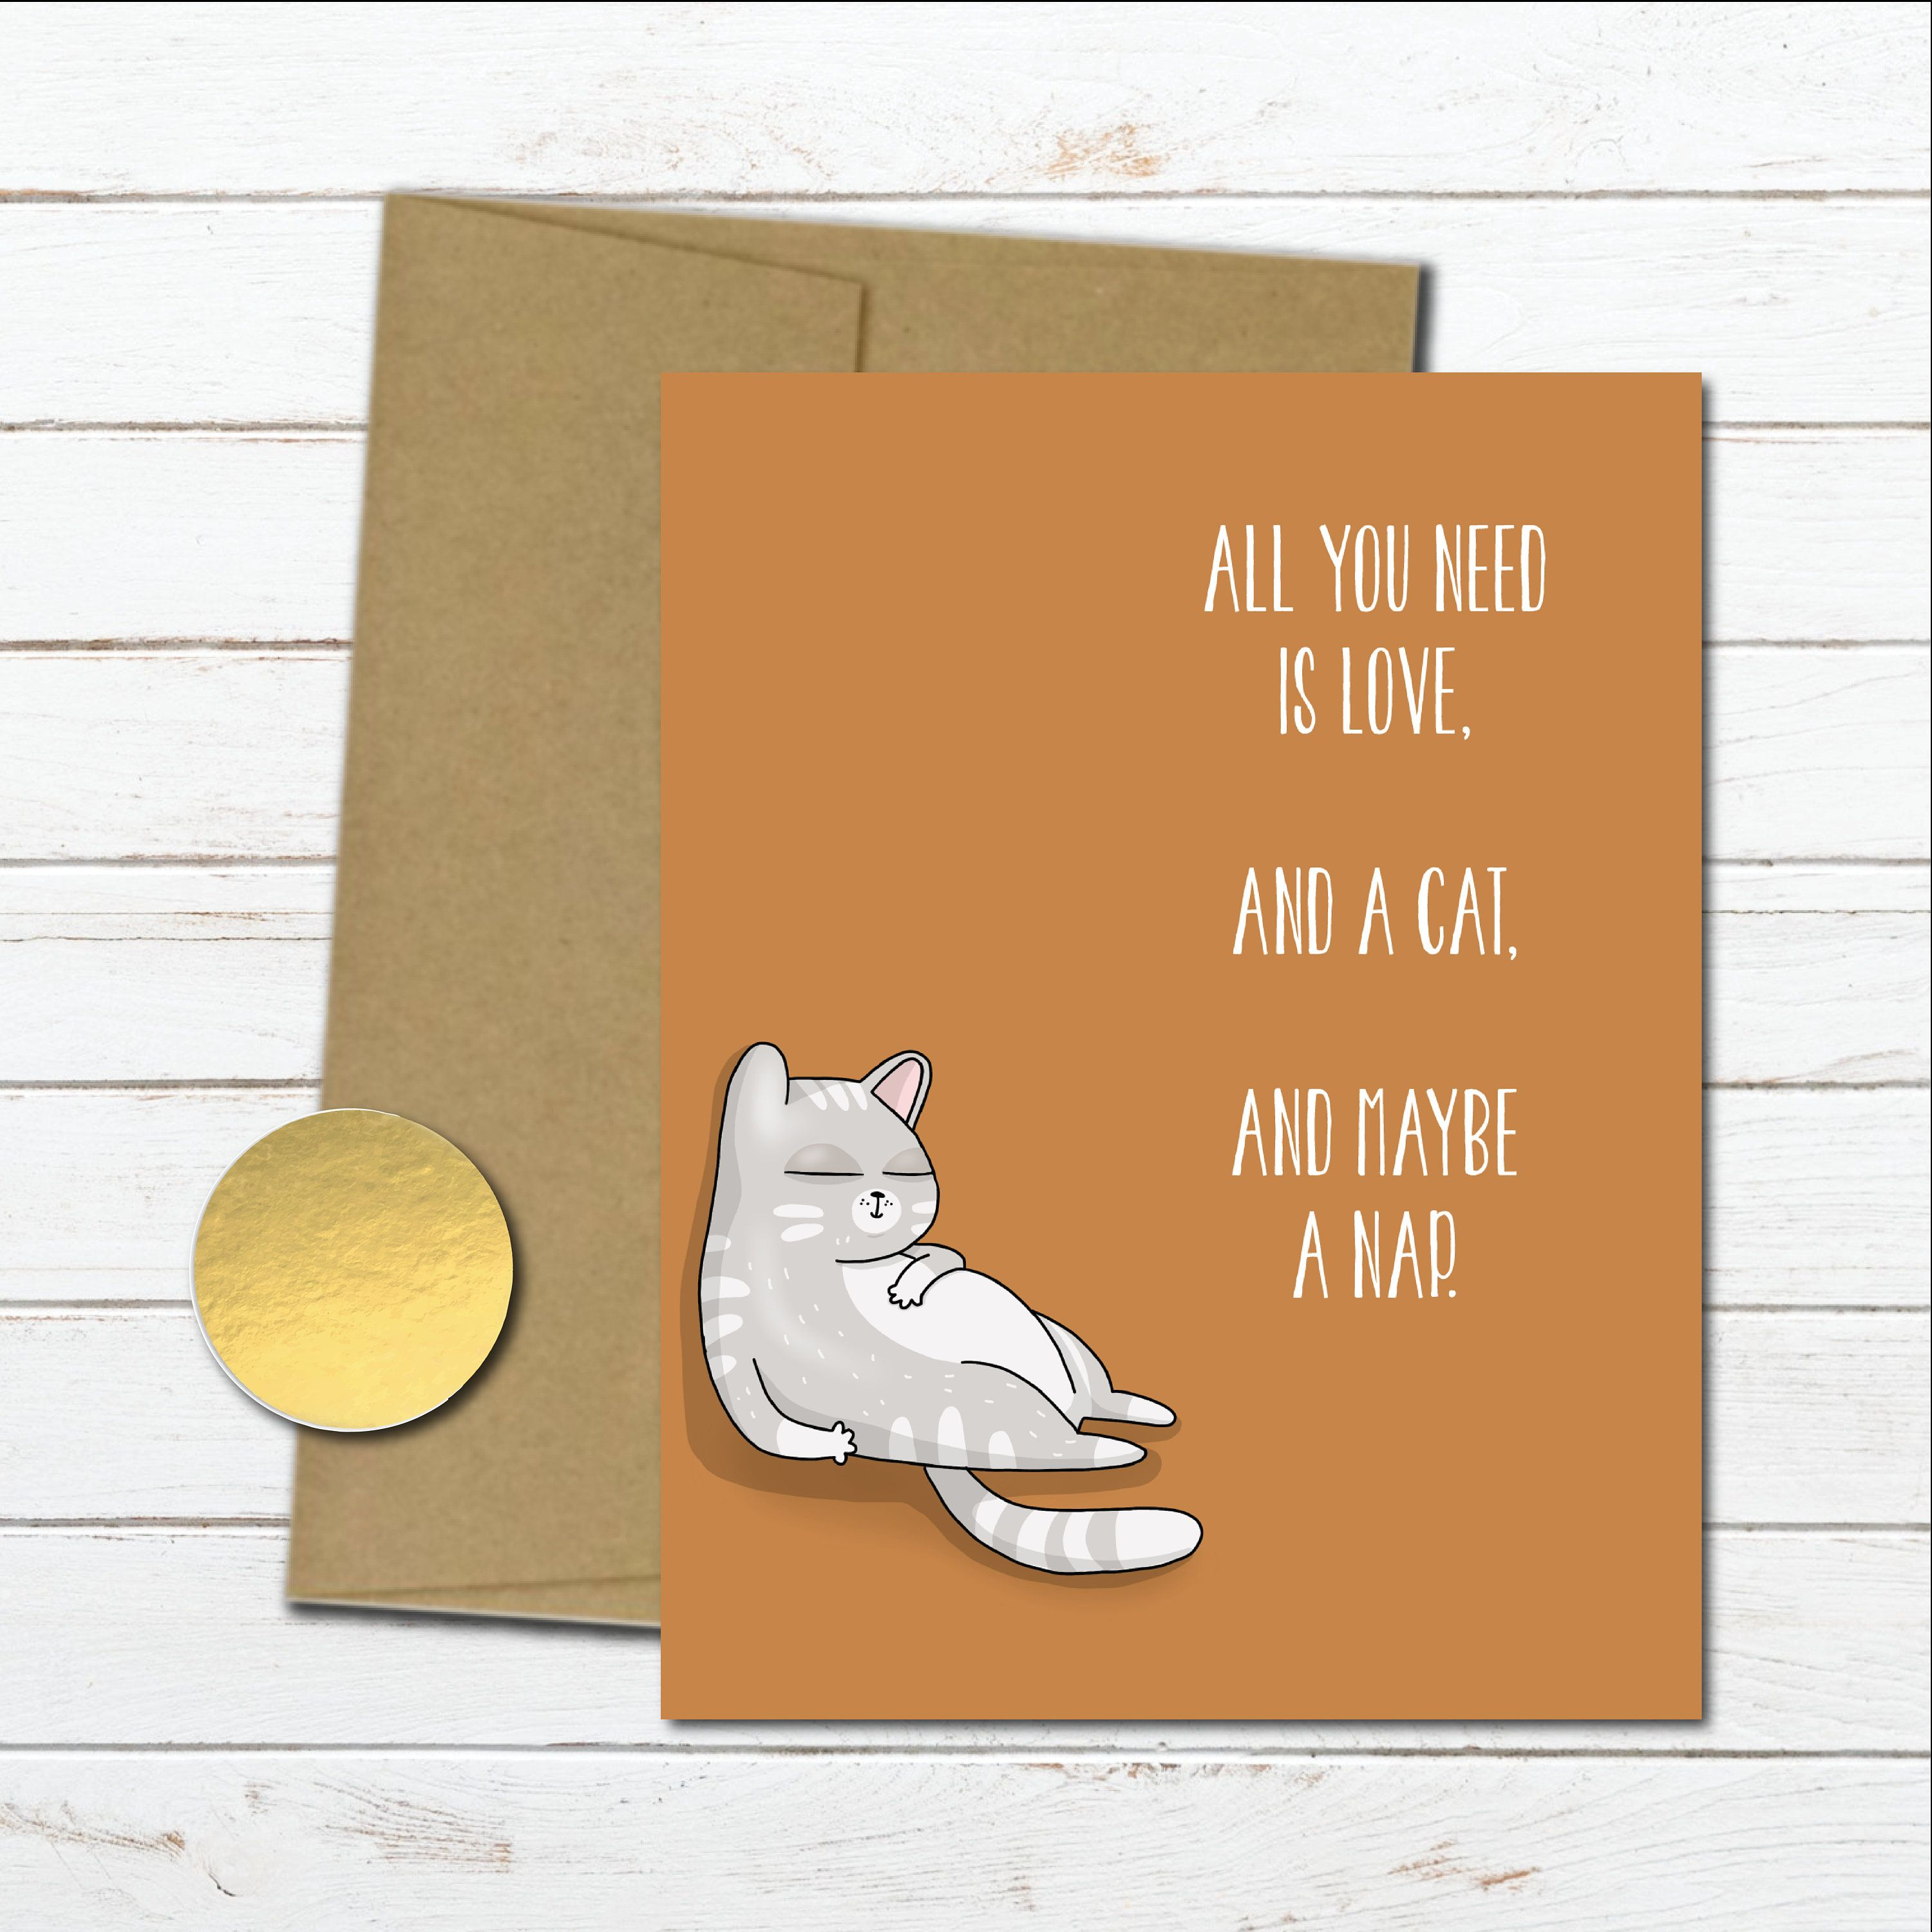 Lazy Cat Love Card For Him Anniversary Card For Boyfriend Husband Wife Couples Gift Cat Gif Cat Birthday Card Cat Birthday Cards Funny Funny Birthday Cards